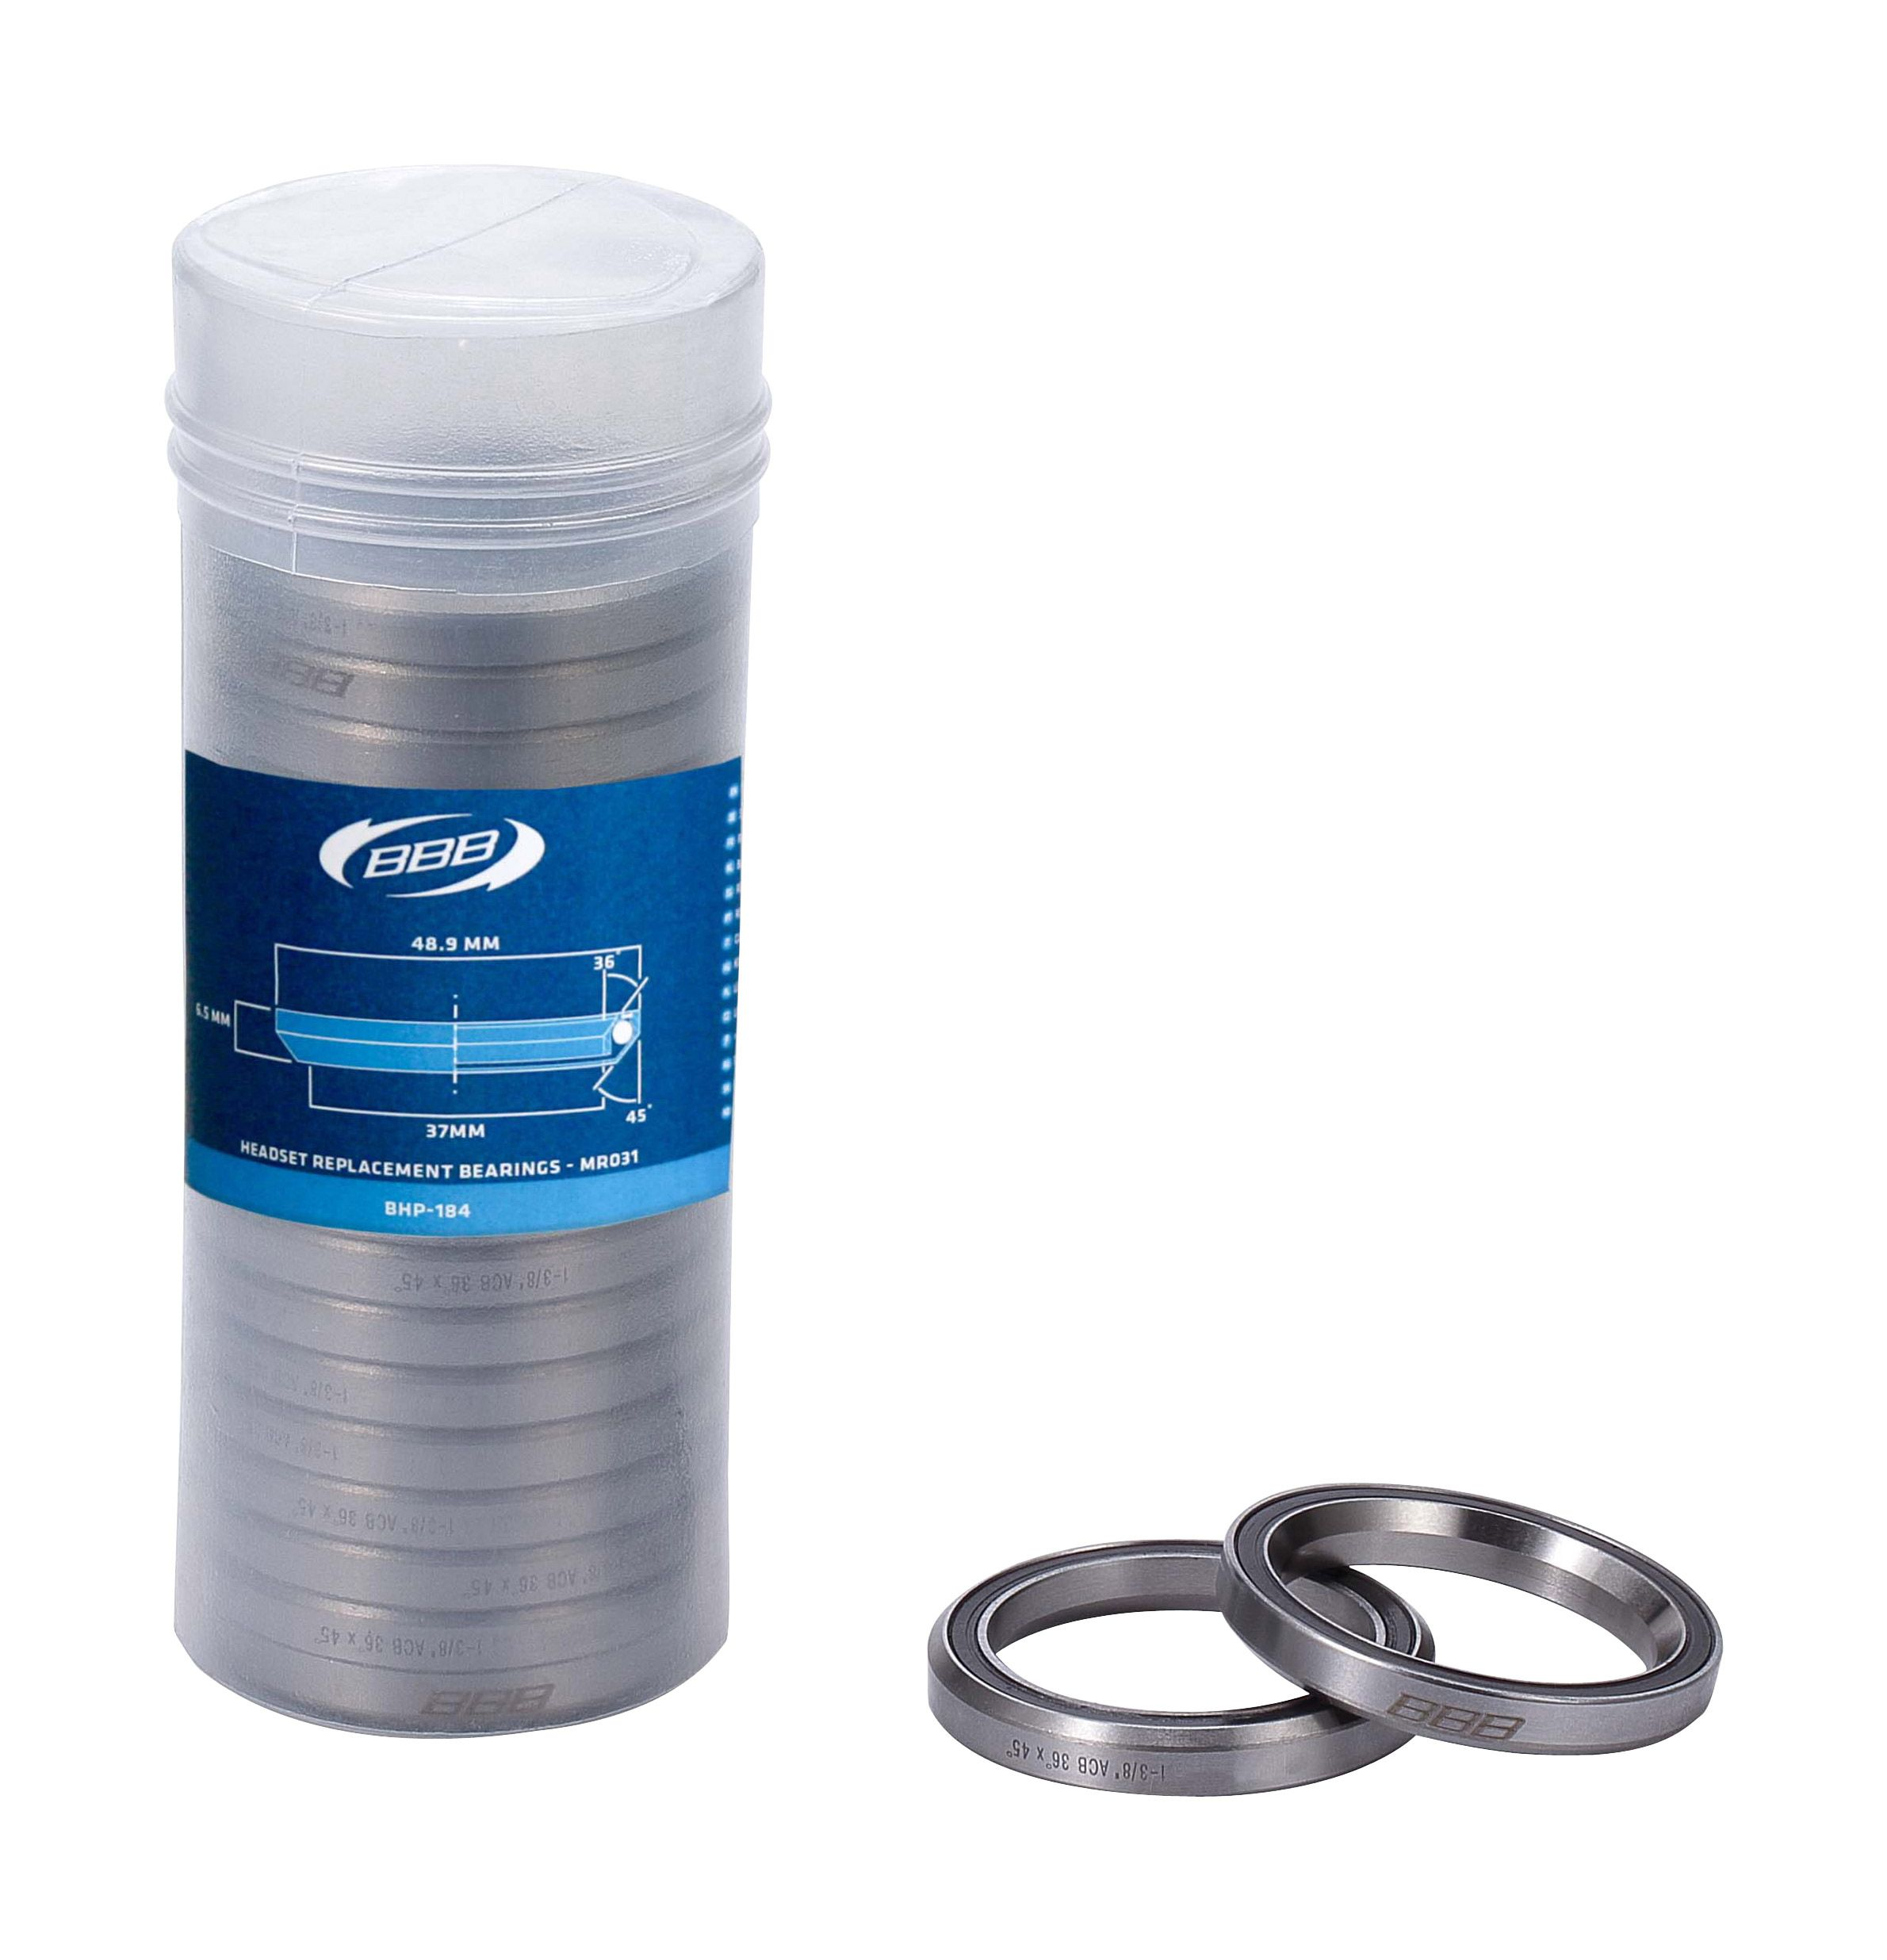 BBB BHP-184 - HEADSET BEARINGS (-20, 1.3/8, 48.9-6.5MM,36 DEGREE-45 DEGREE) 2929628401